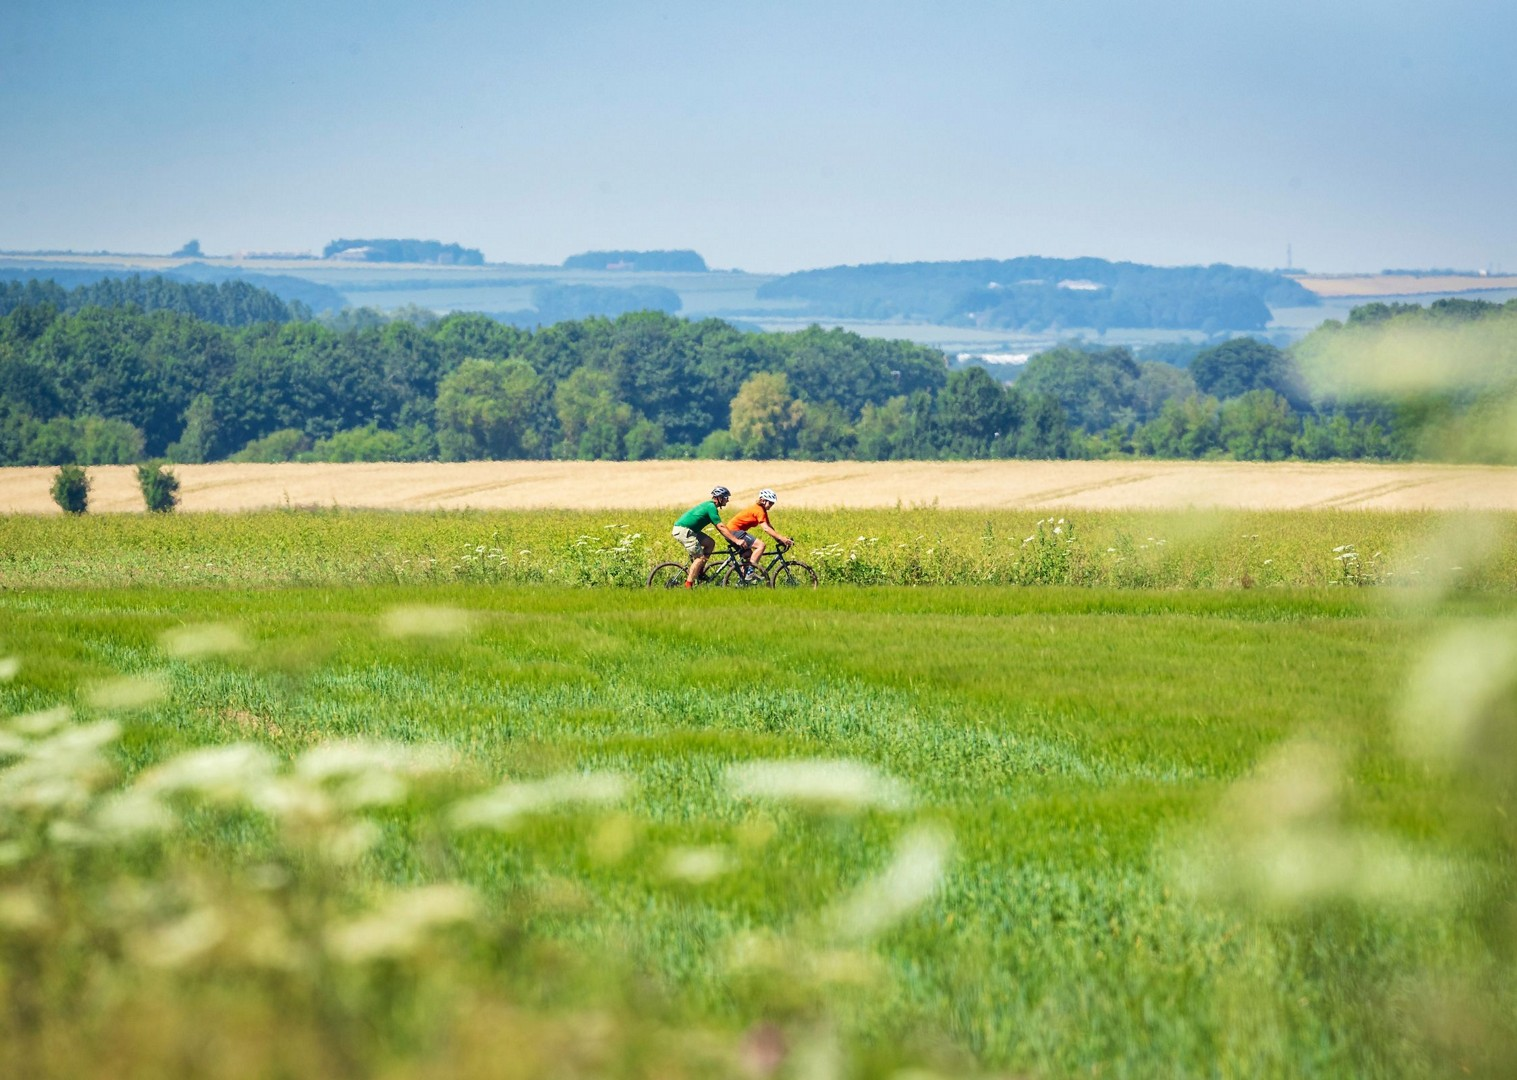 wolds-5-day-leisure-cycling-uk-skedaddle.jpg - UK - Yorkshire Wolds - 5 Days Cycling - Self-Guided Leisure Cycling Holiday - Leisure Cycling